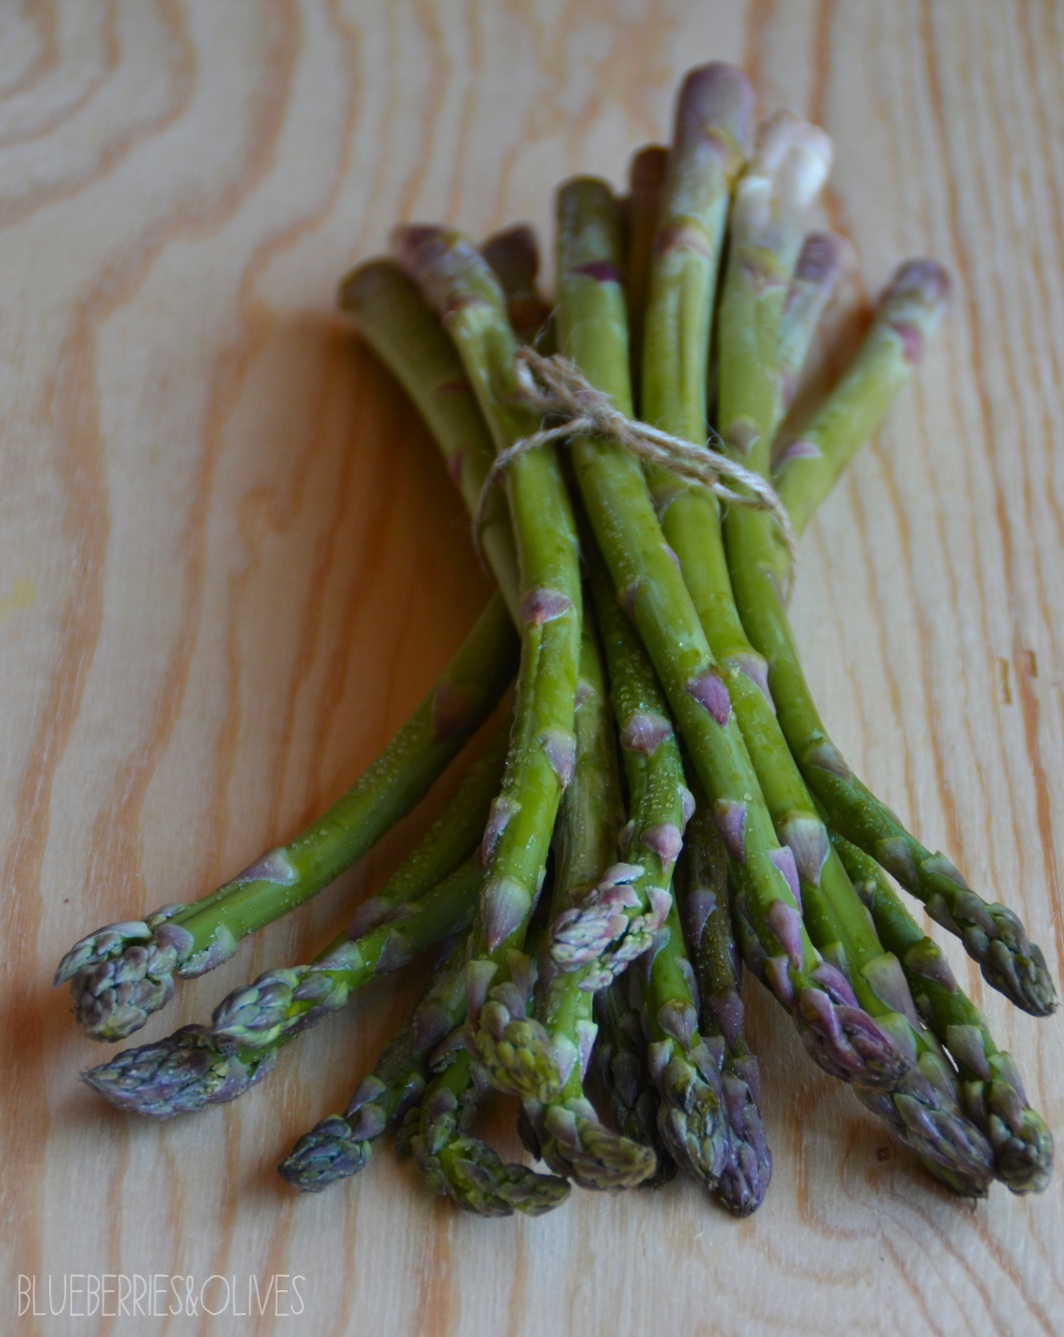 ASPARAGUS - BUCKWHEAT AND ASPARAGUS SALAD WITH TAHINI DRESSING